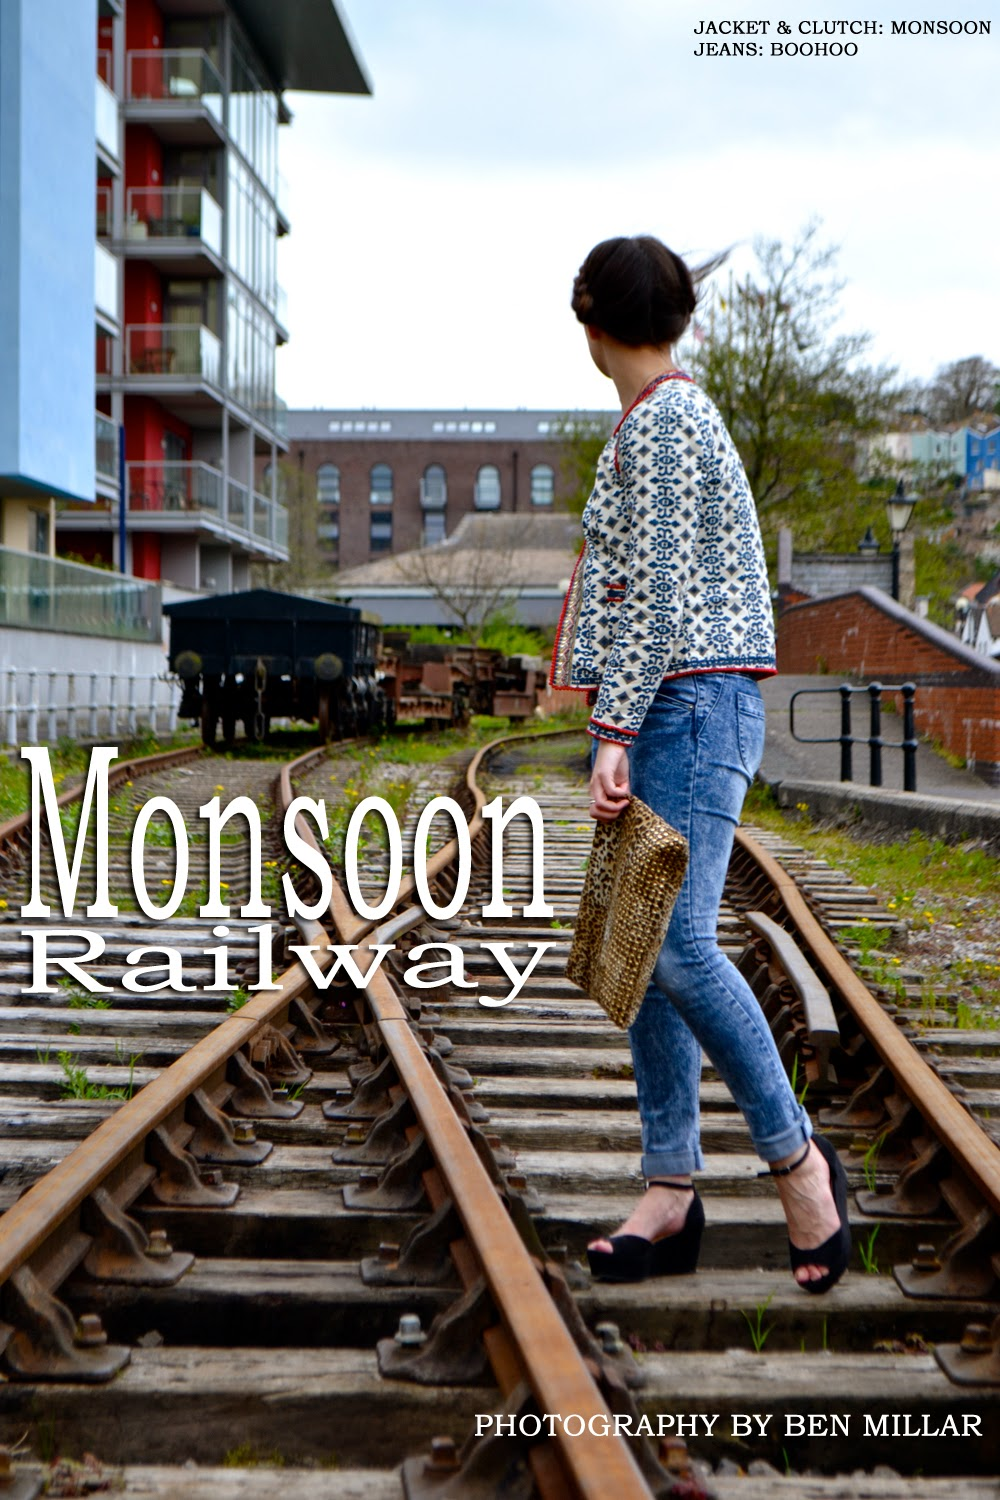 Monsoon embelished jacket; clashing prints